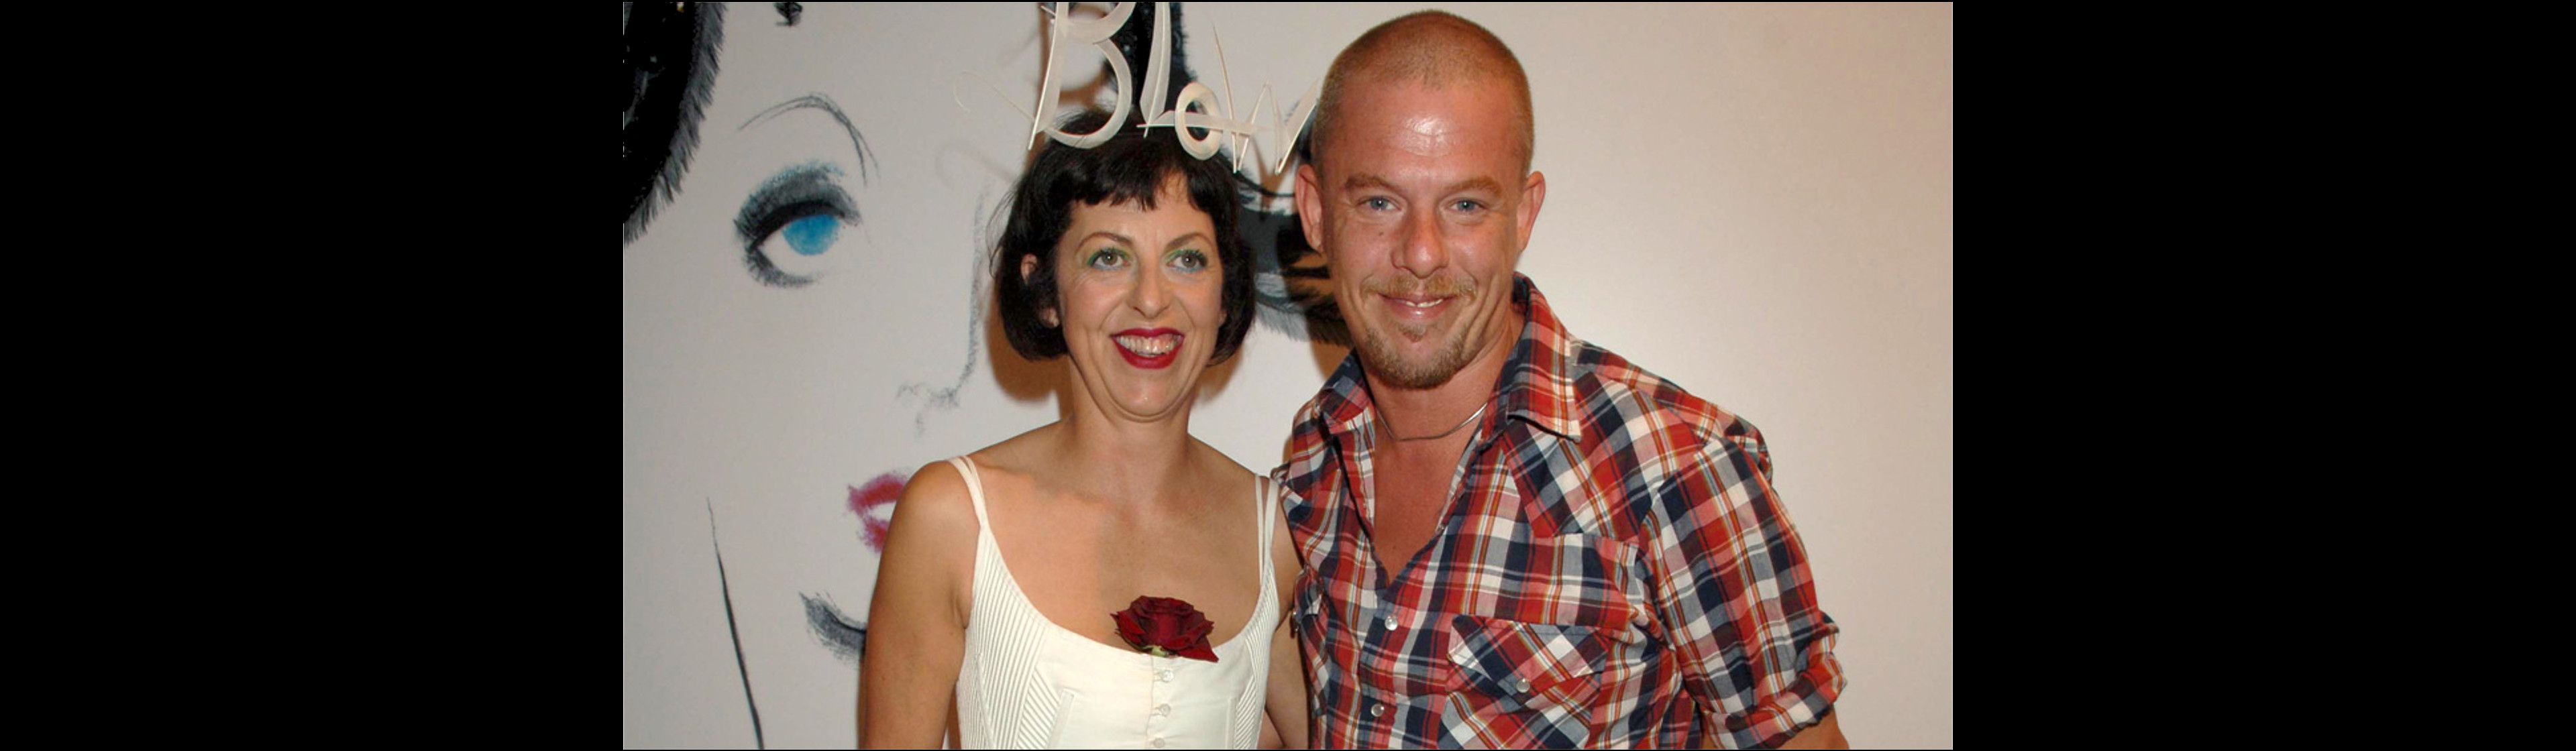 The Ripper: A Story of Alexander McQueen & Isabella Blow